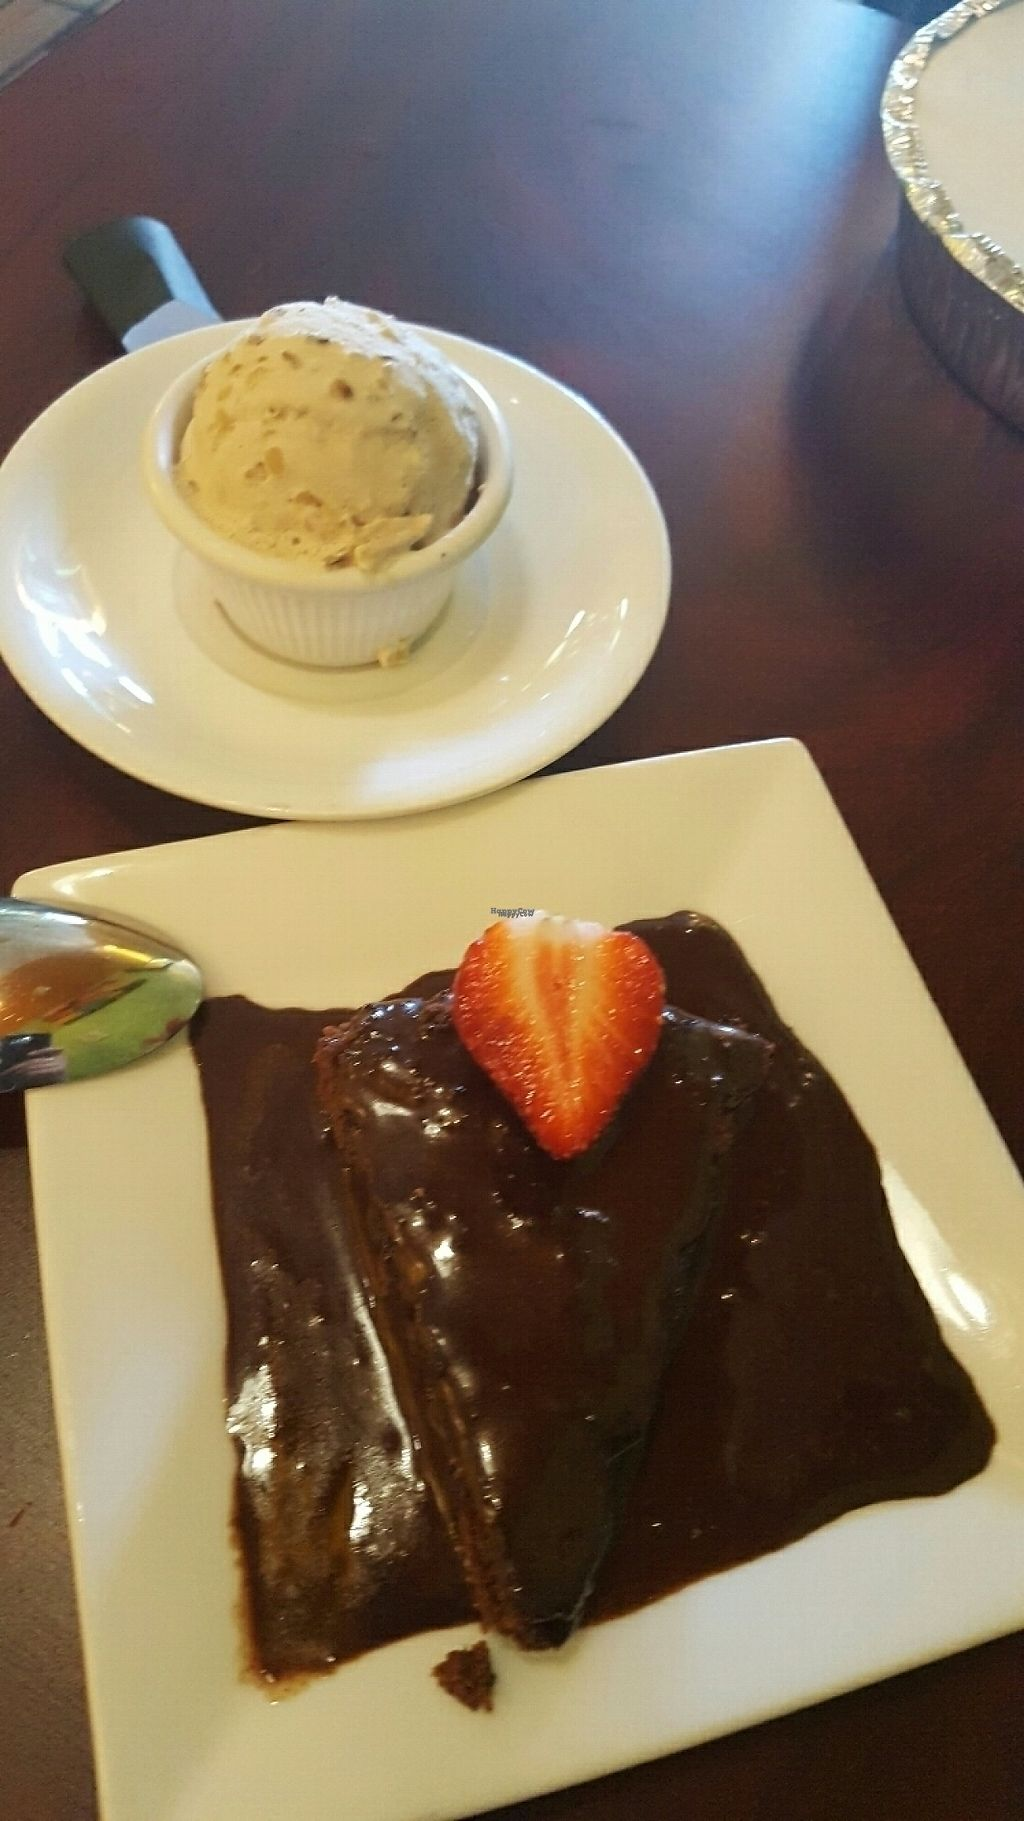 """Photo of Green Leaf  by <a href=""""/members/profile/VeganScientist"""">VeganScientist</a> <br/>Vegan gluten-free chocolate brownie and maple bourbon ice cream <br/> March 15, 2017  - <a href='/contact/abuse/image/44678/236765'>Report</a>"""